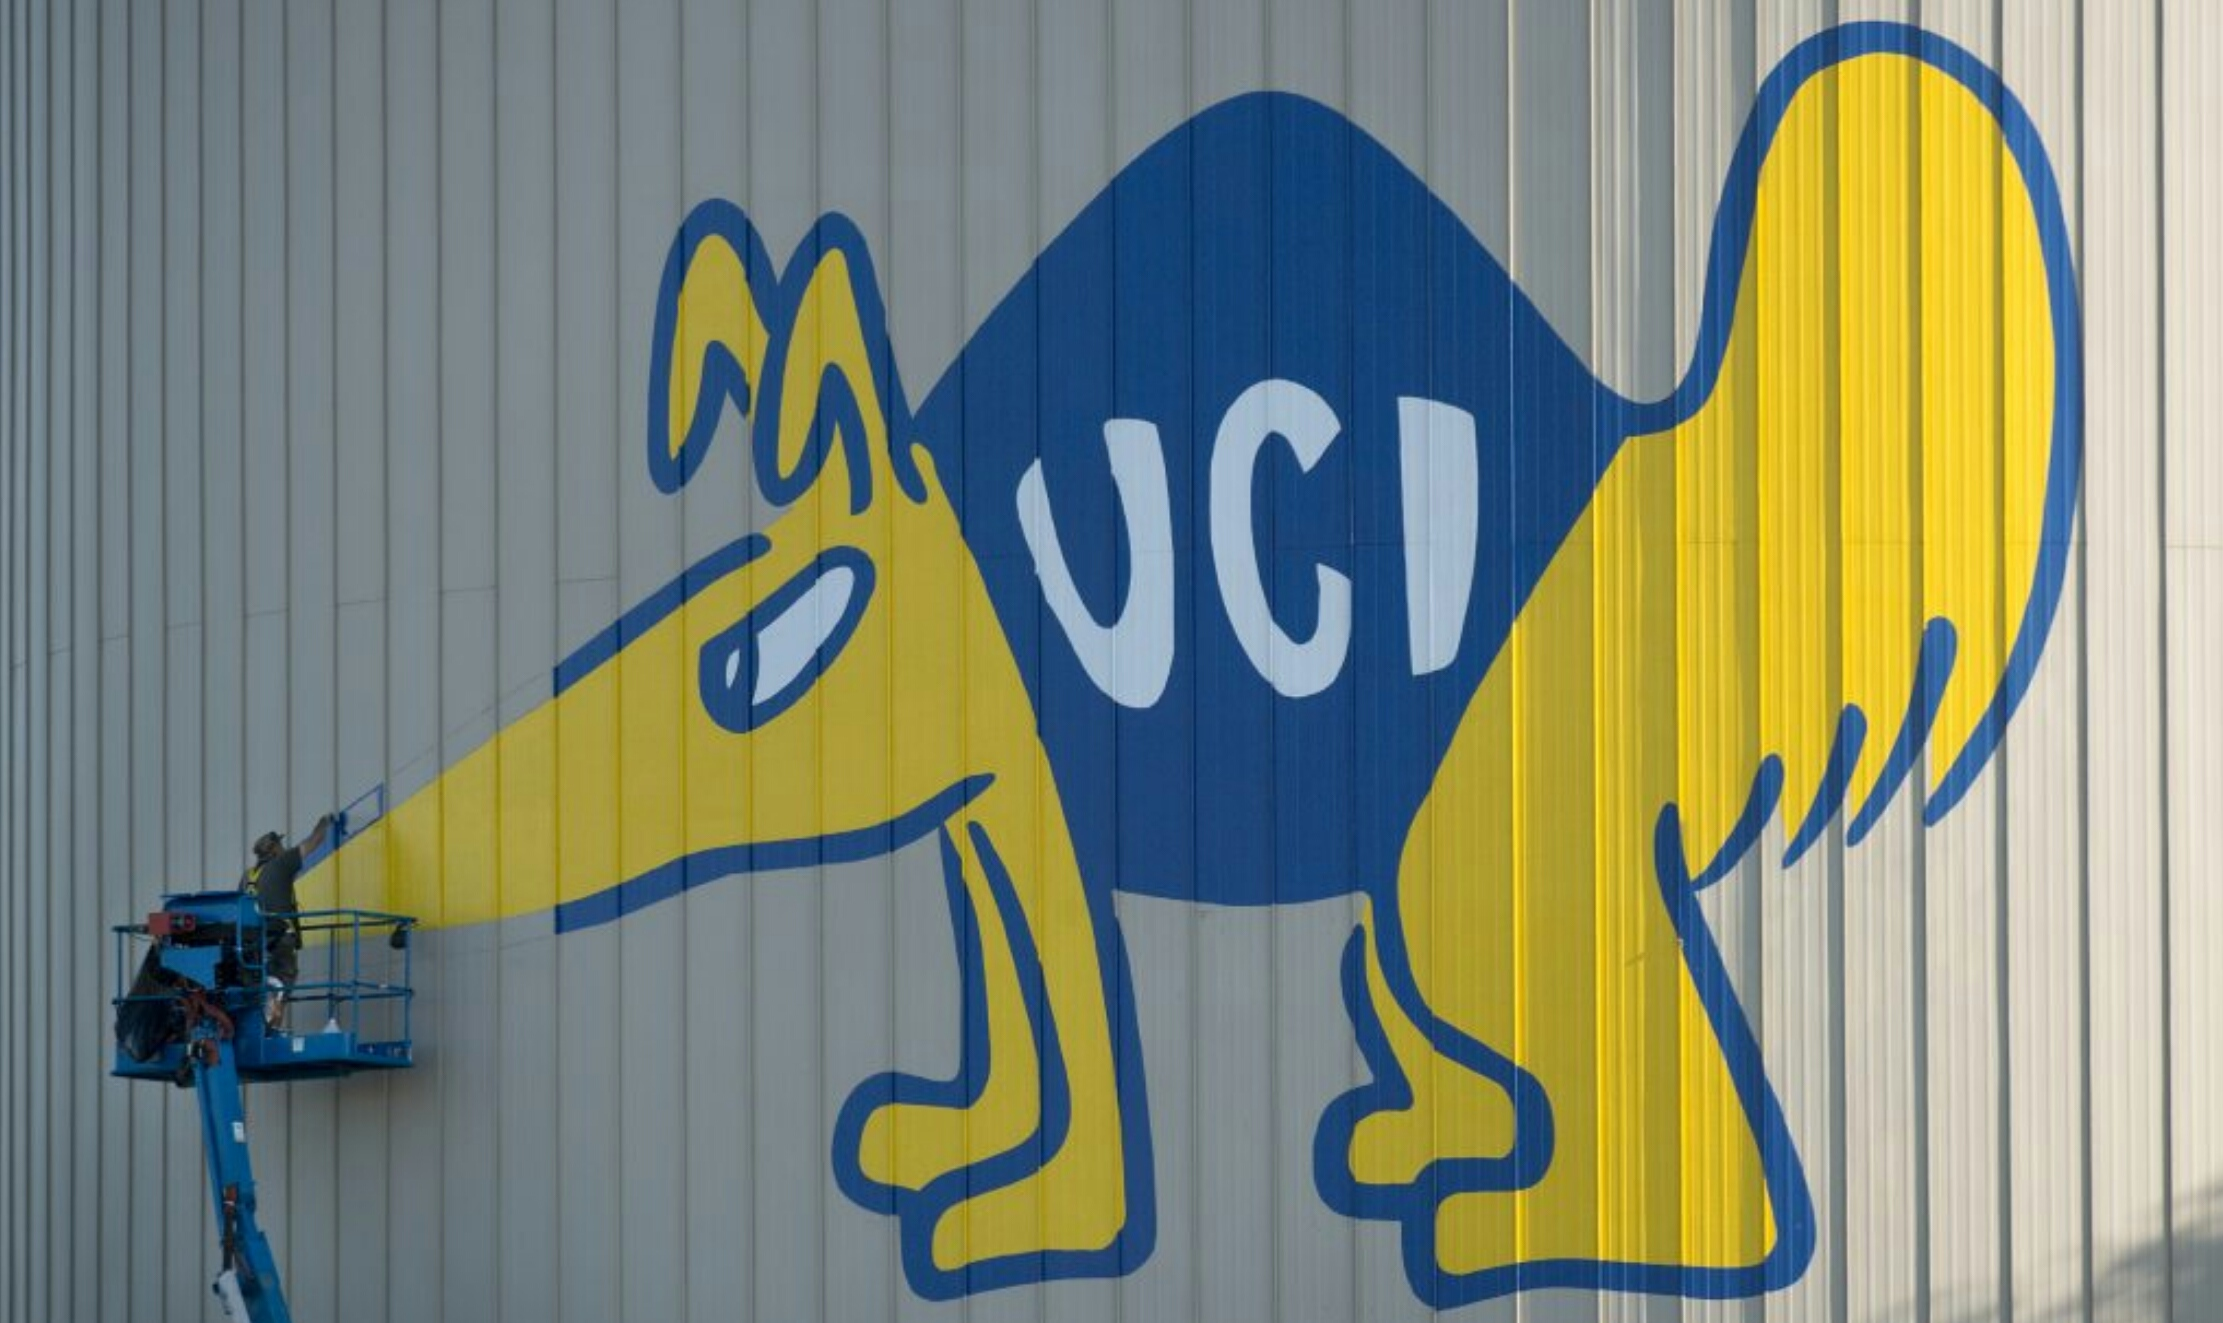 Peter the Anteater hand painted graphic mural